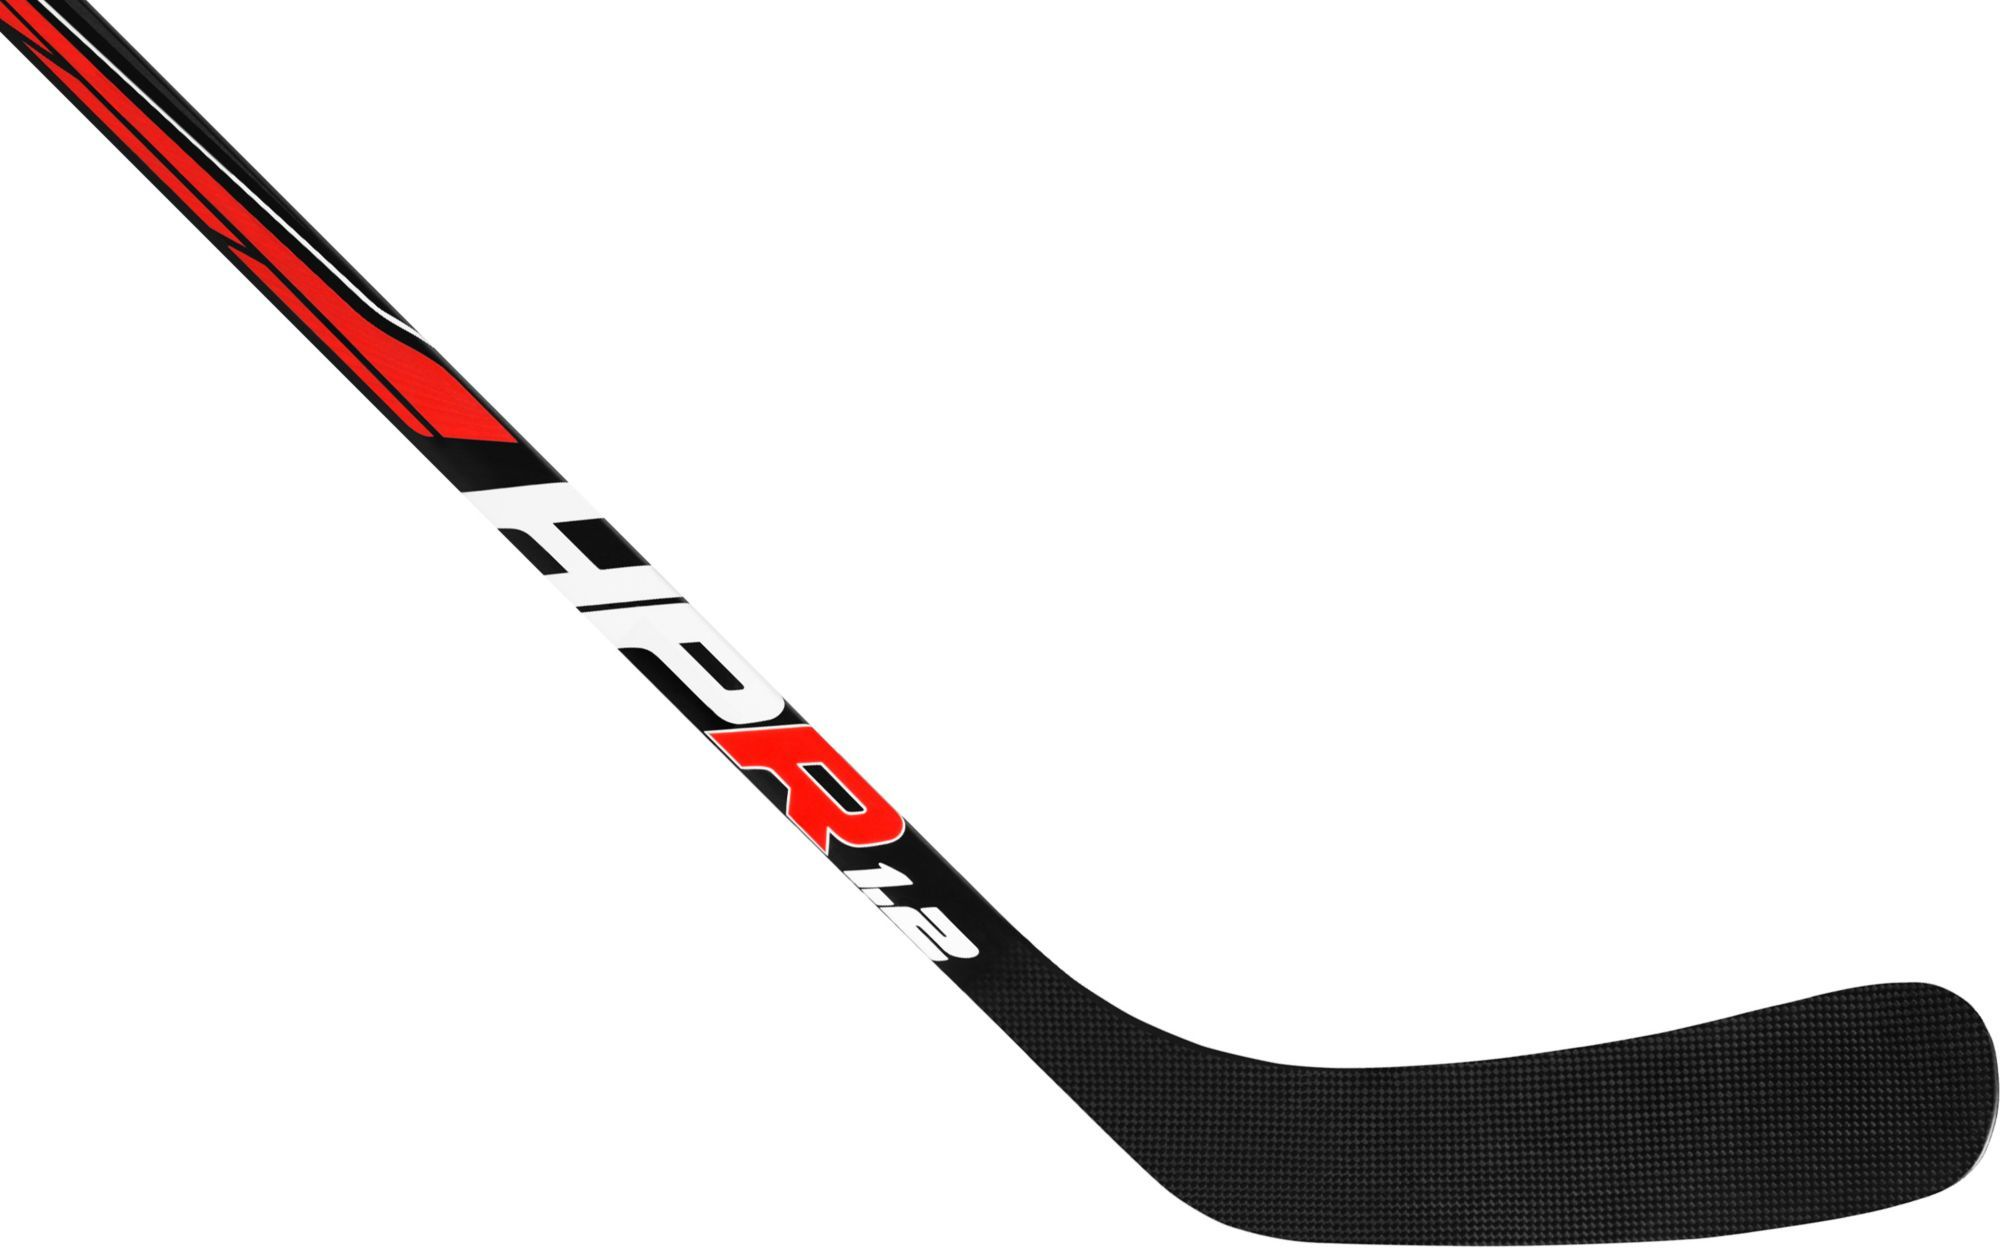 Stx Senior Stallion Hpr 12 Ice (White) Hockey Stick